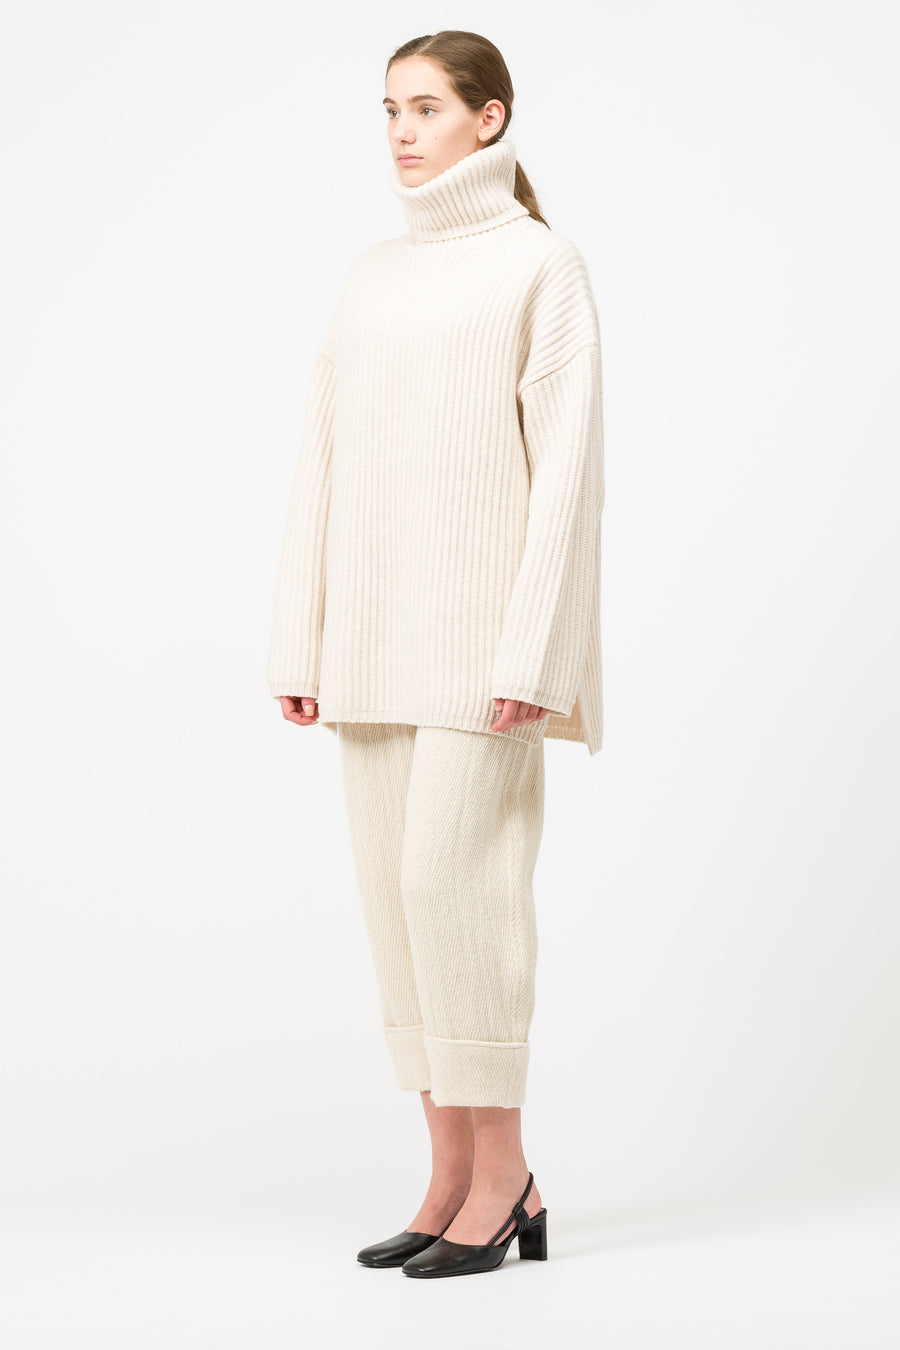 Acne Studios LX2 New Disa Sweater in Off White - Notre